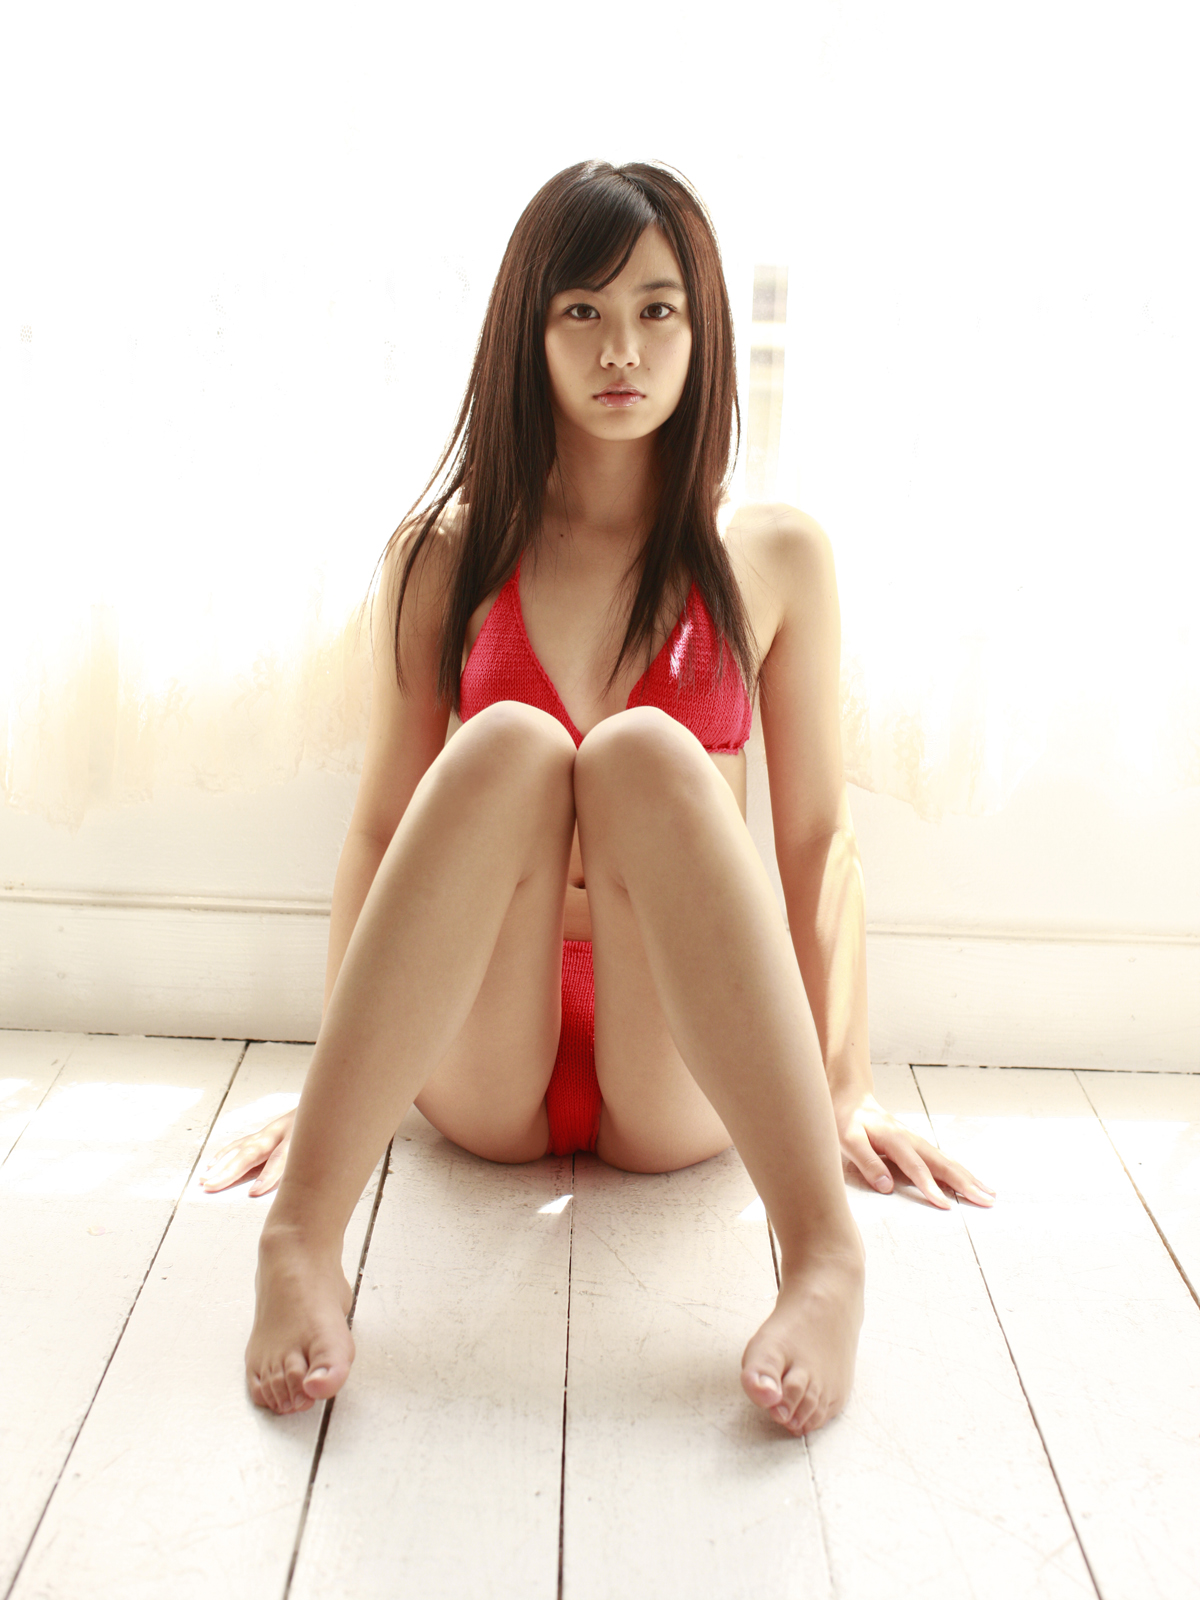 Japan Teen Girl - Yui Ito In Red Hot Bikini Pictures-5221